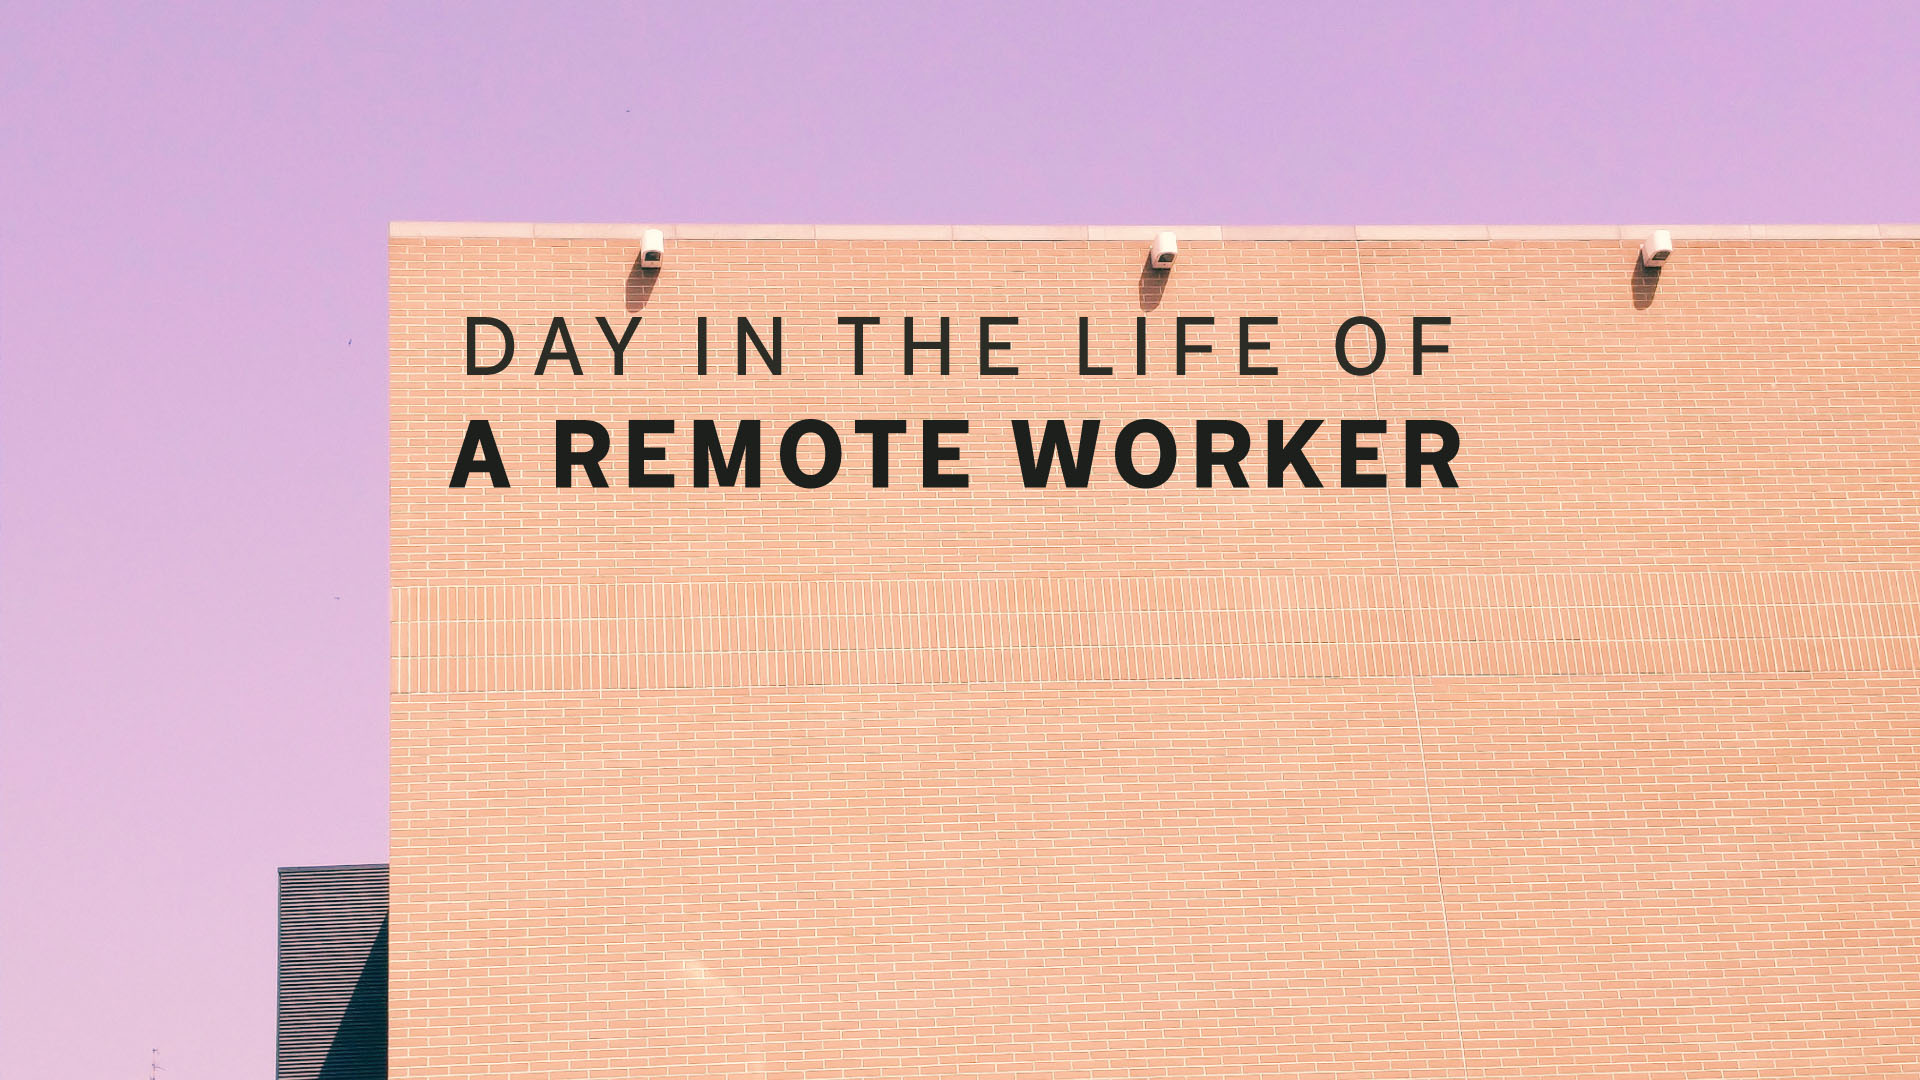 day-in-the-life-of-remote-worker,